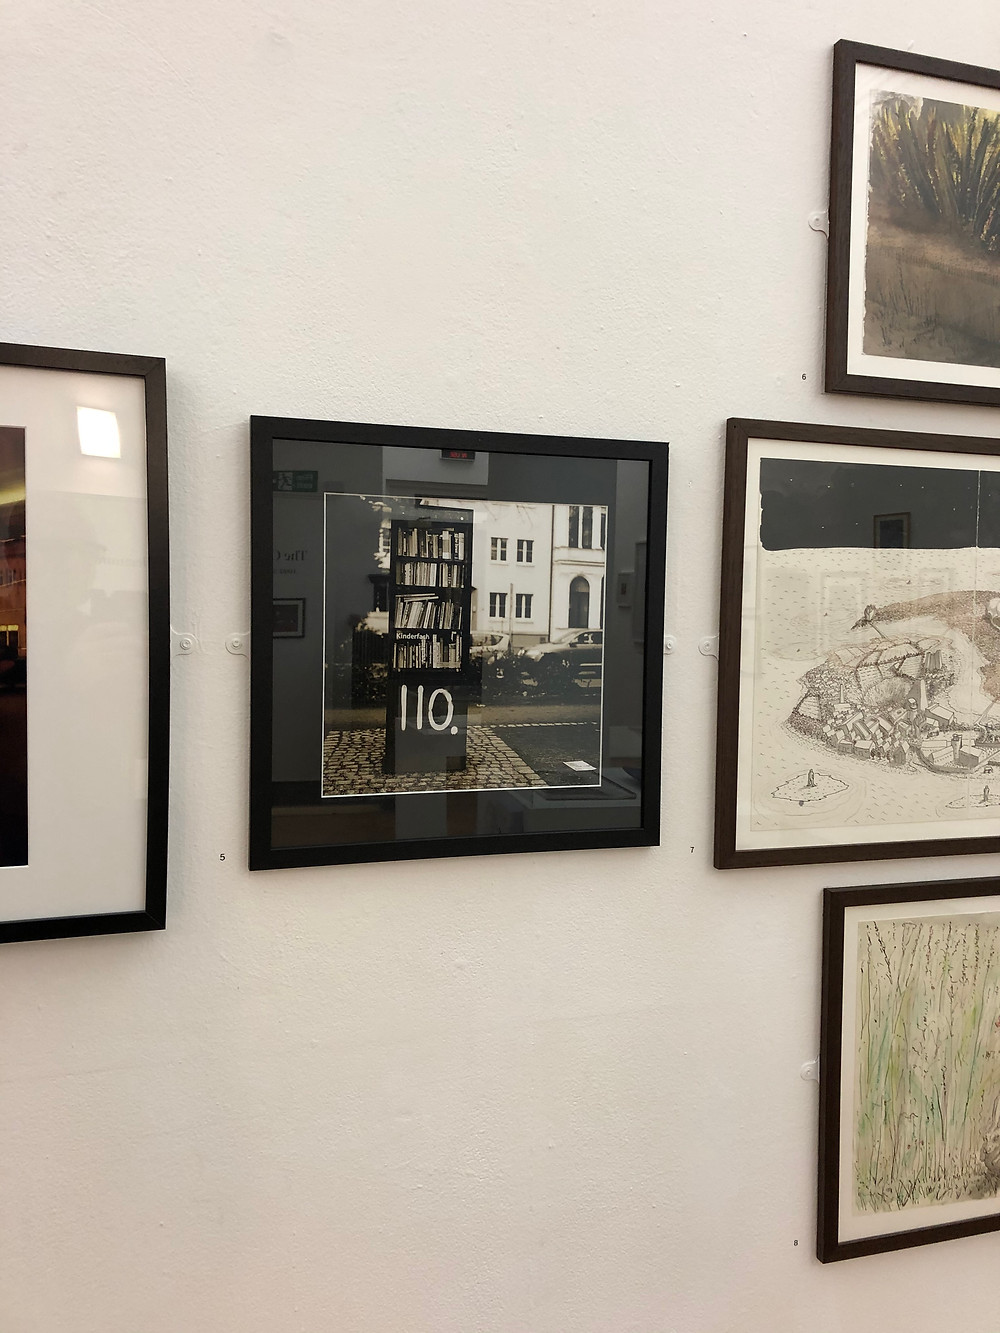 My sepia toned Public Bookshelf print is currently on show at Leeds Arts University, Vernon Street. It's a lovely surprise to have spotted it